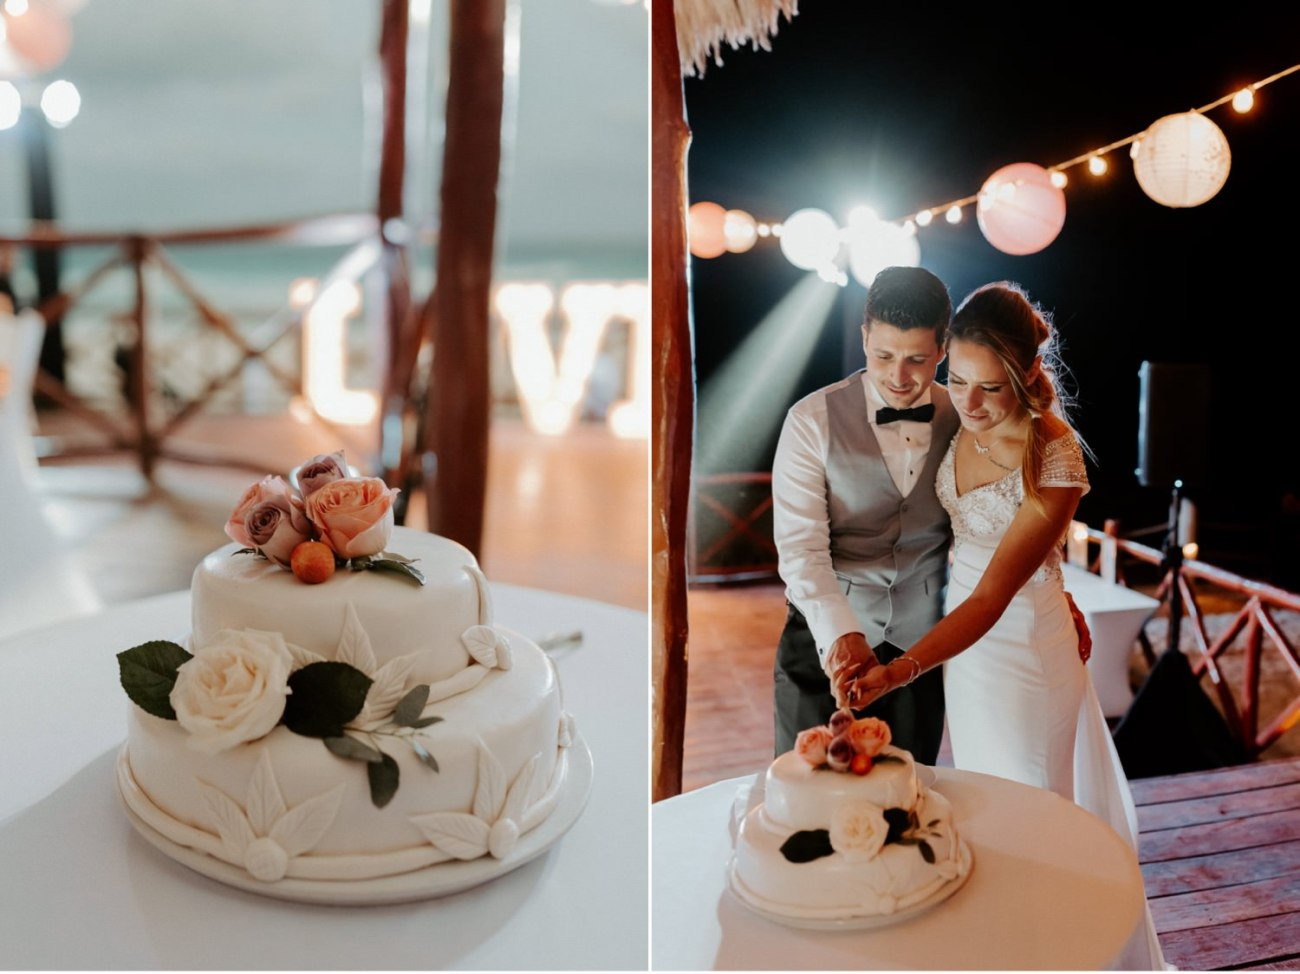 Cancun Destination Wedding Mexico Tulum Wedding Photographer Anais Possamai Photography 075